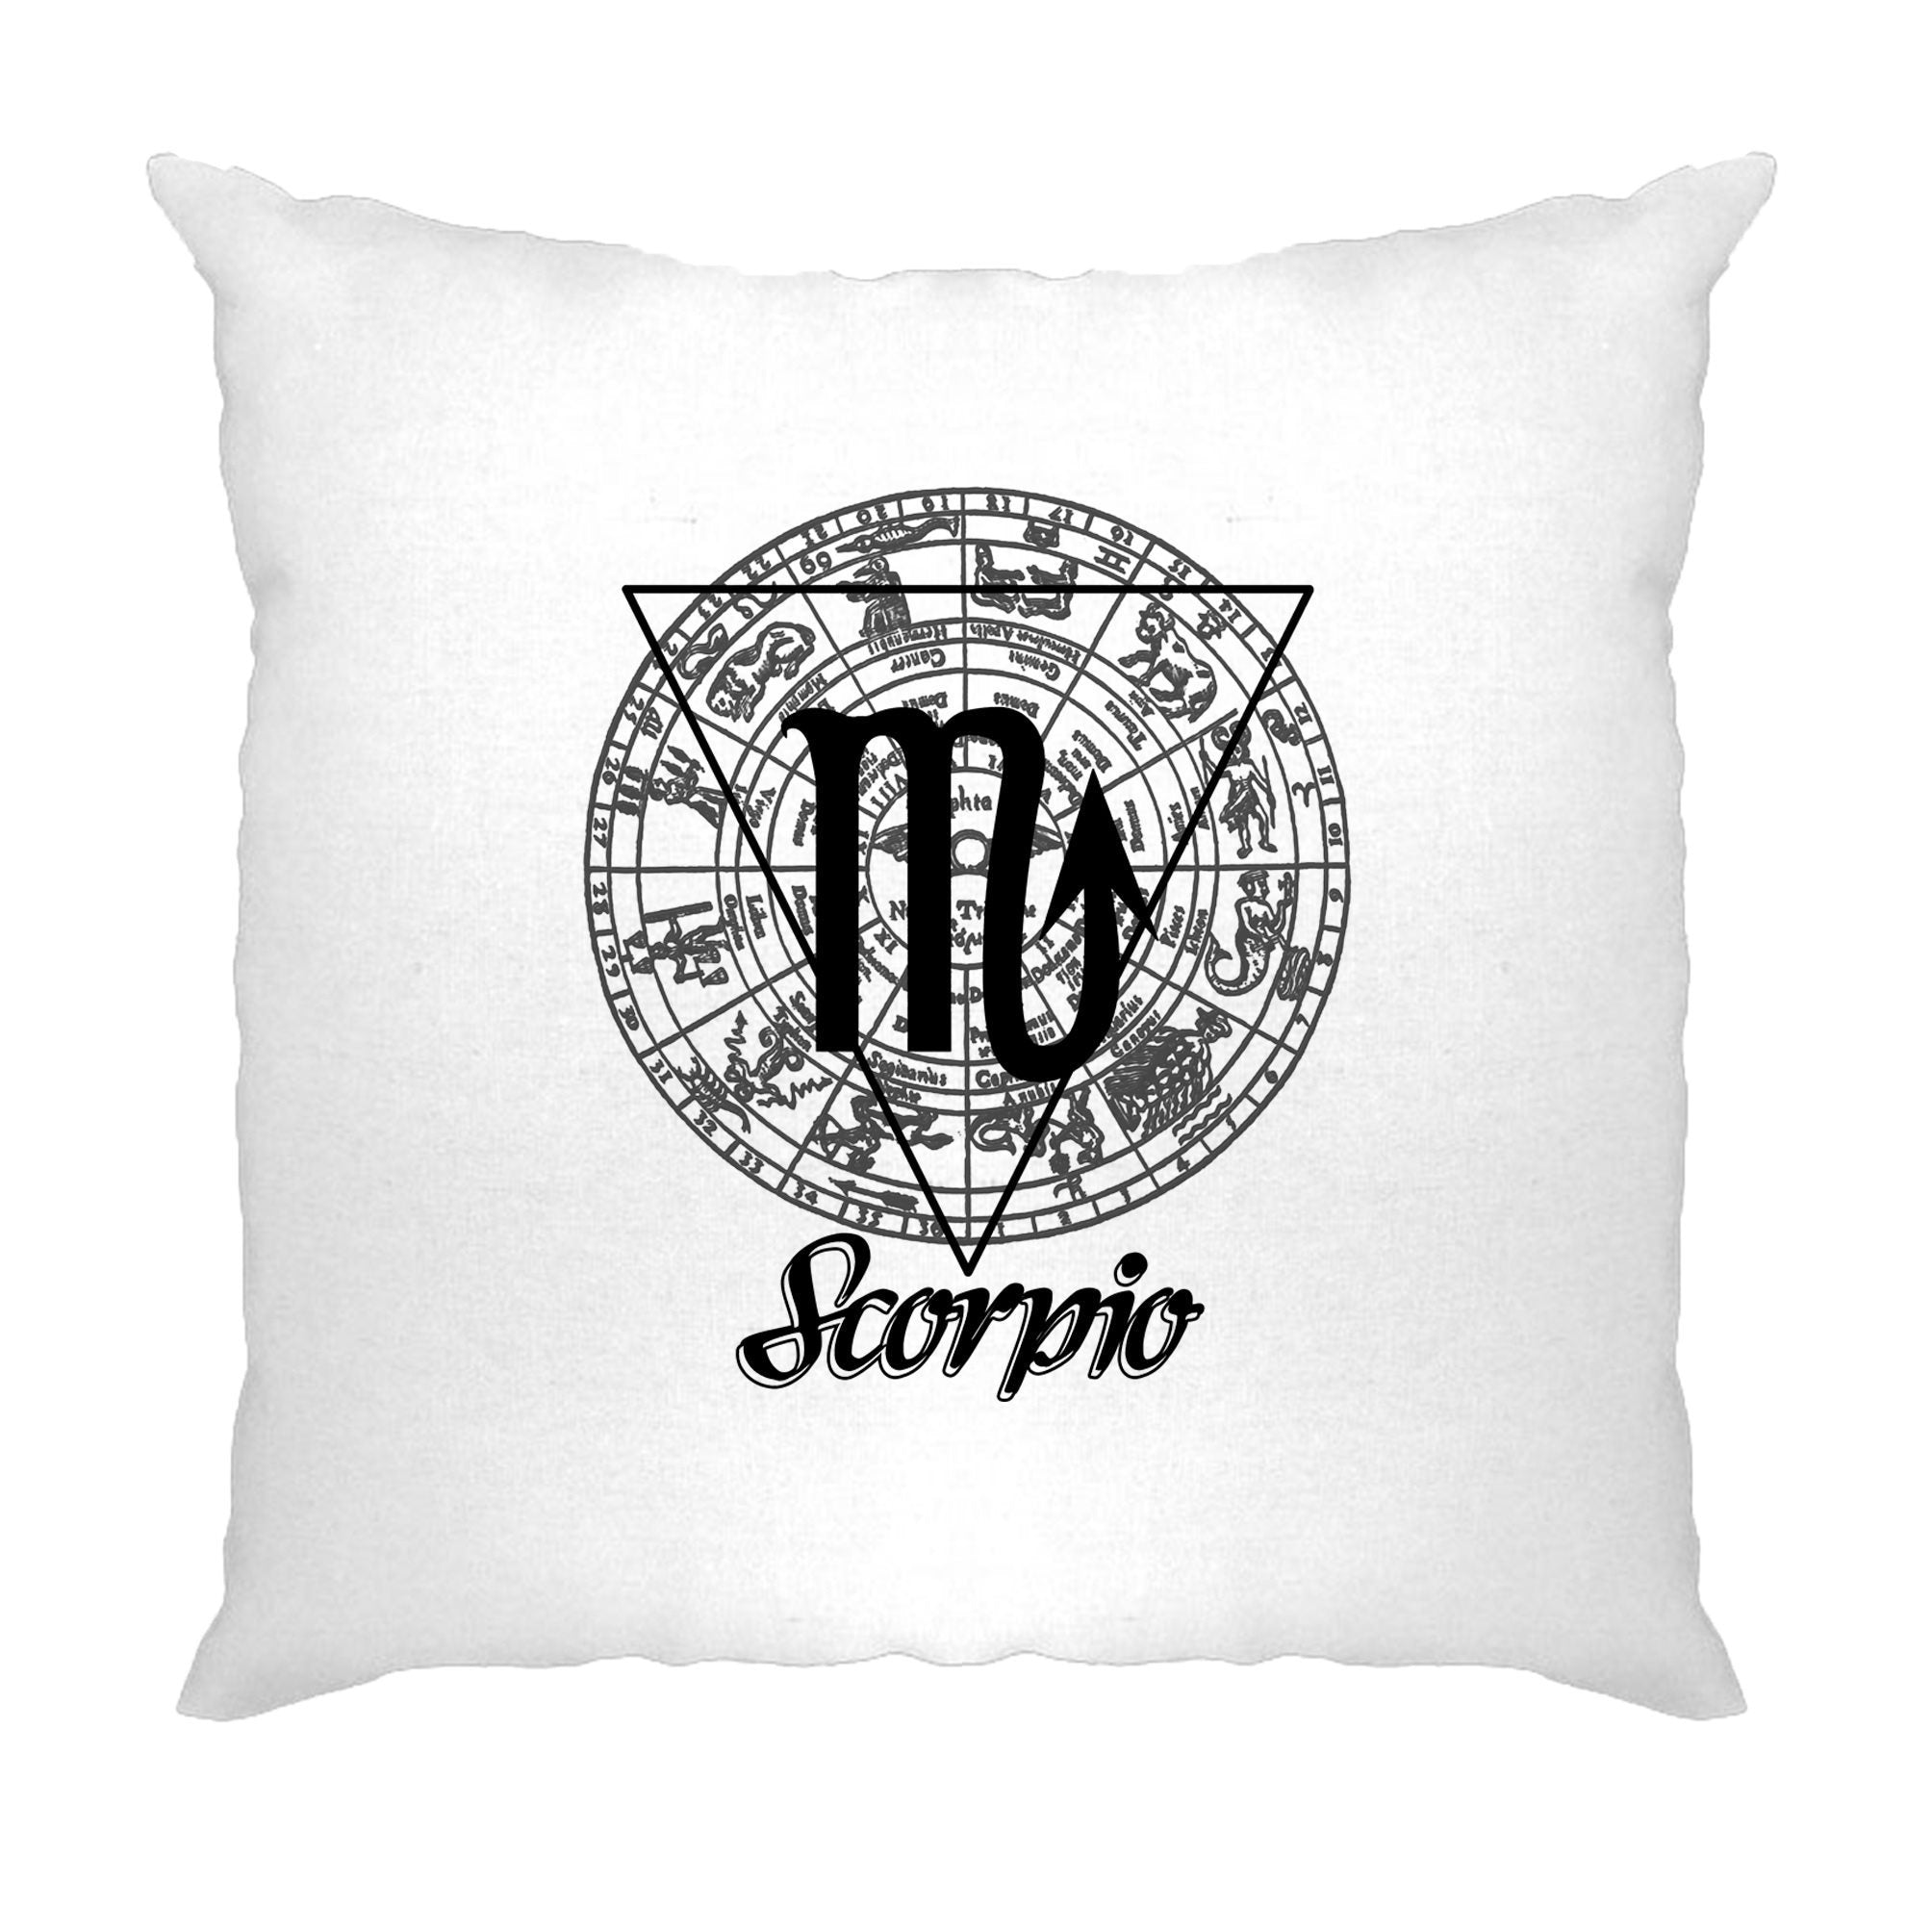 Horoscope Cushion Cover Scorpio Zodiac Star Sign Birthday